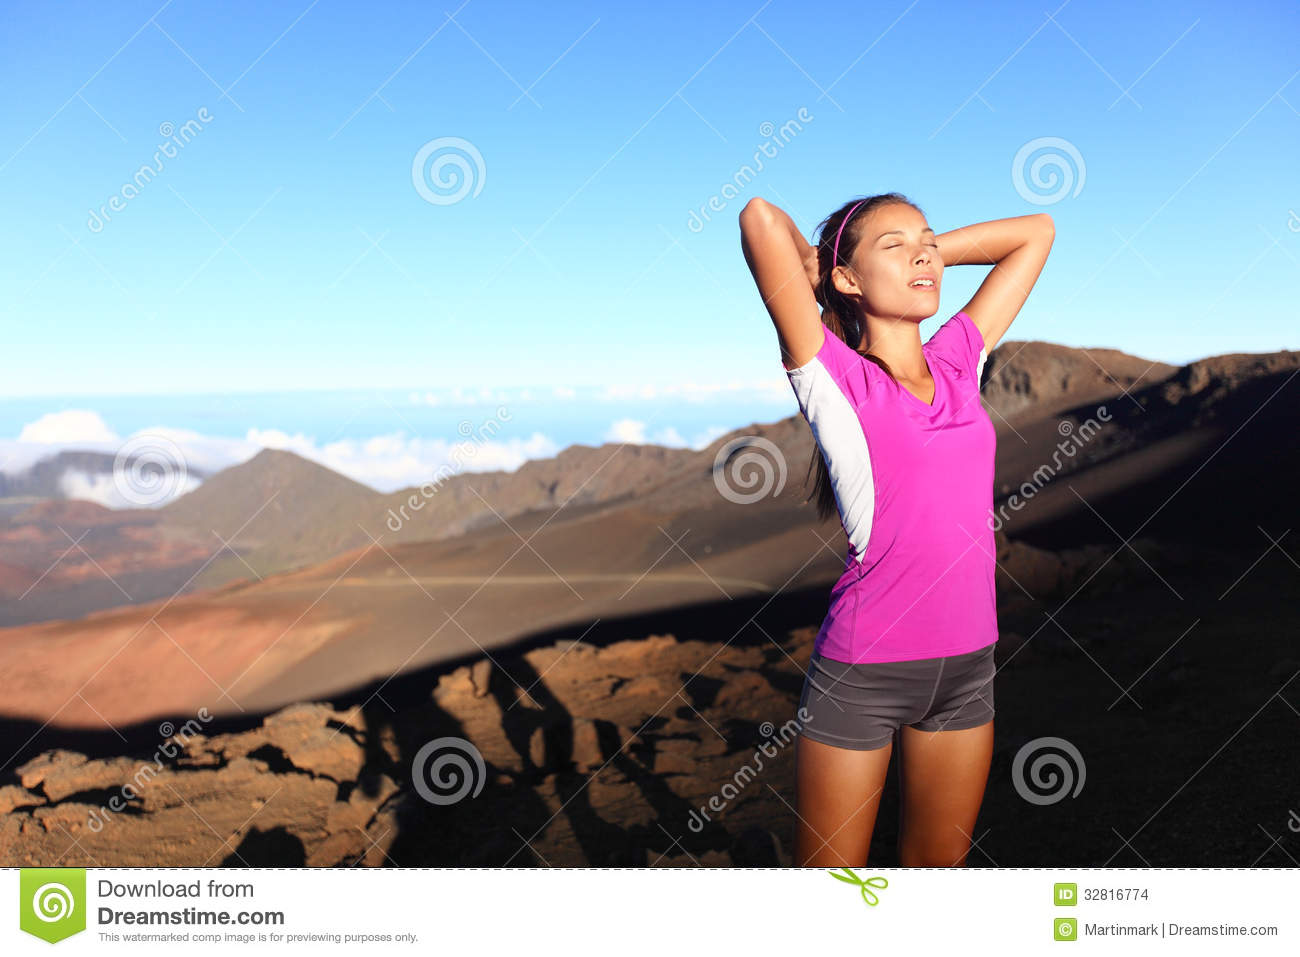 runner athlete woman relaxing after running stock images